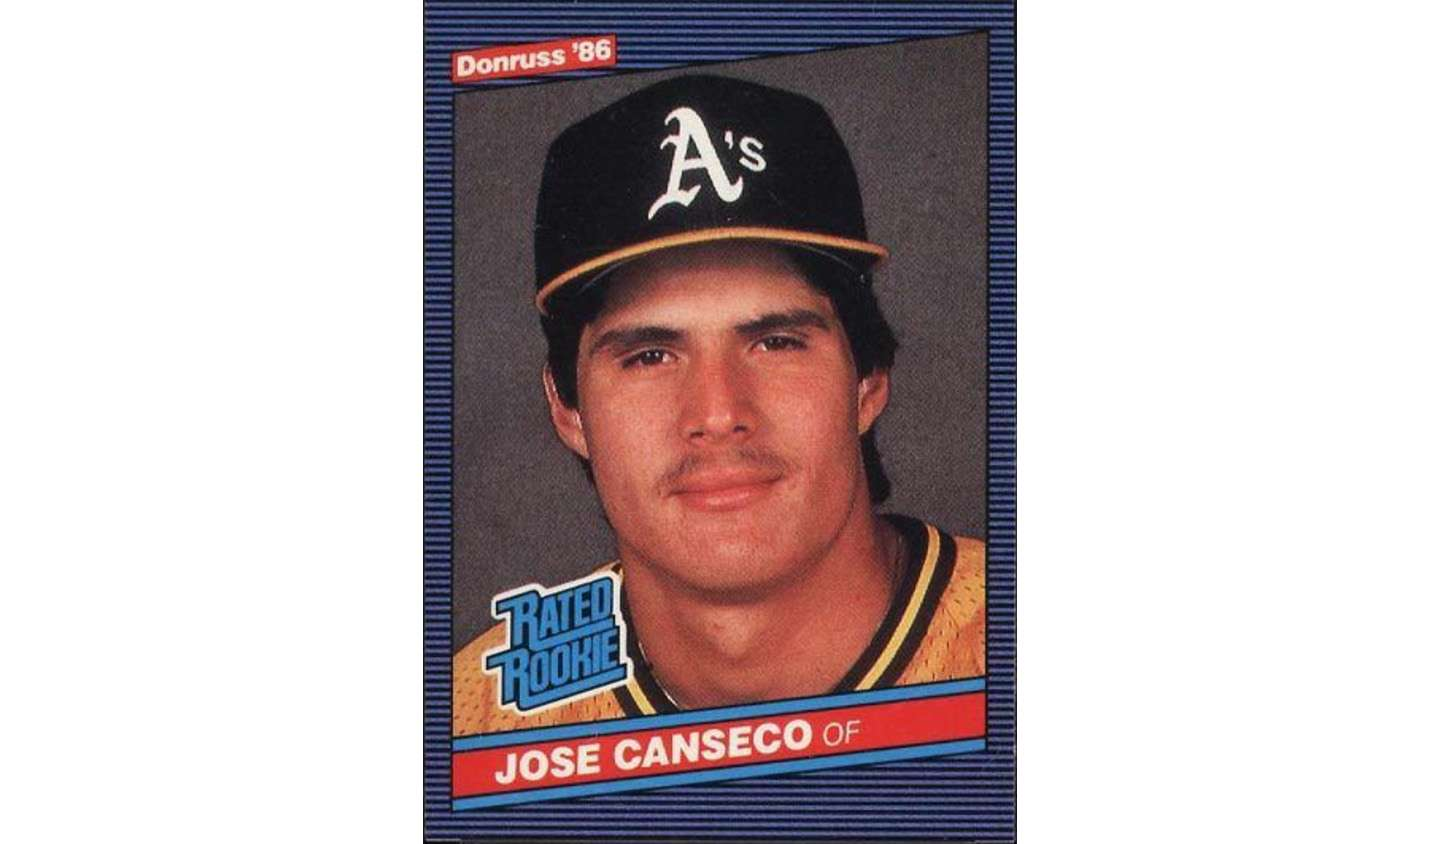 Jose Canseco Aspires To One Day Manage In The Majors